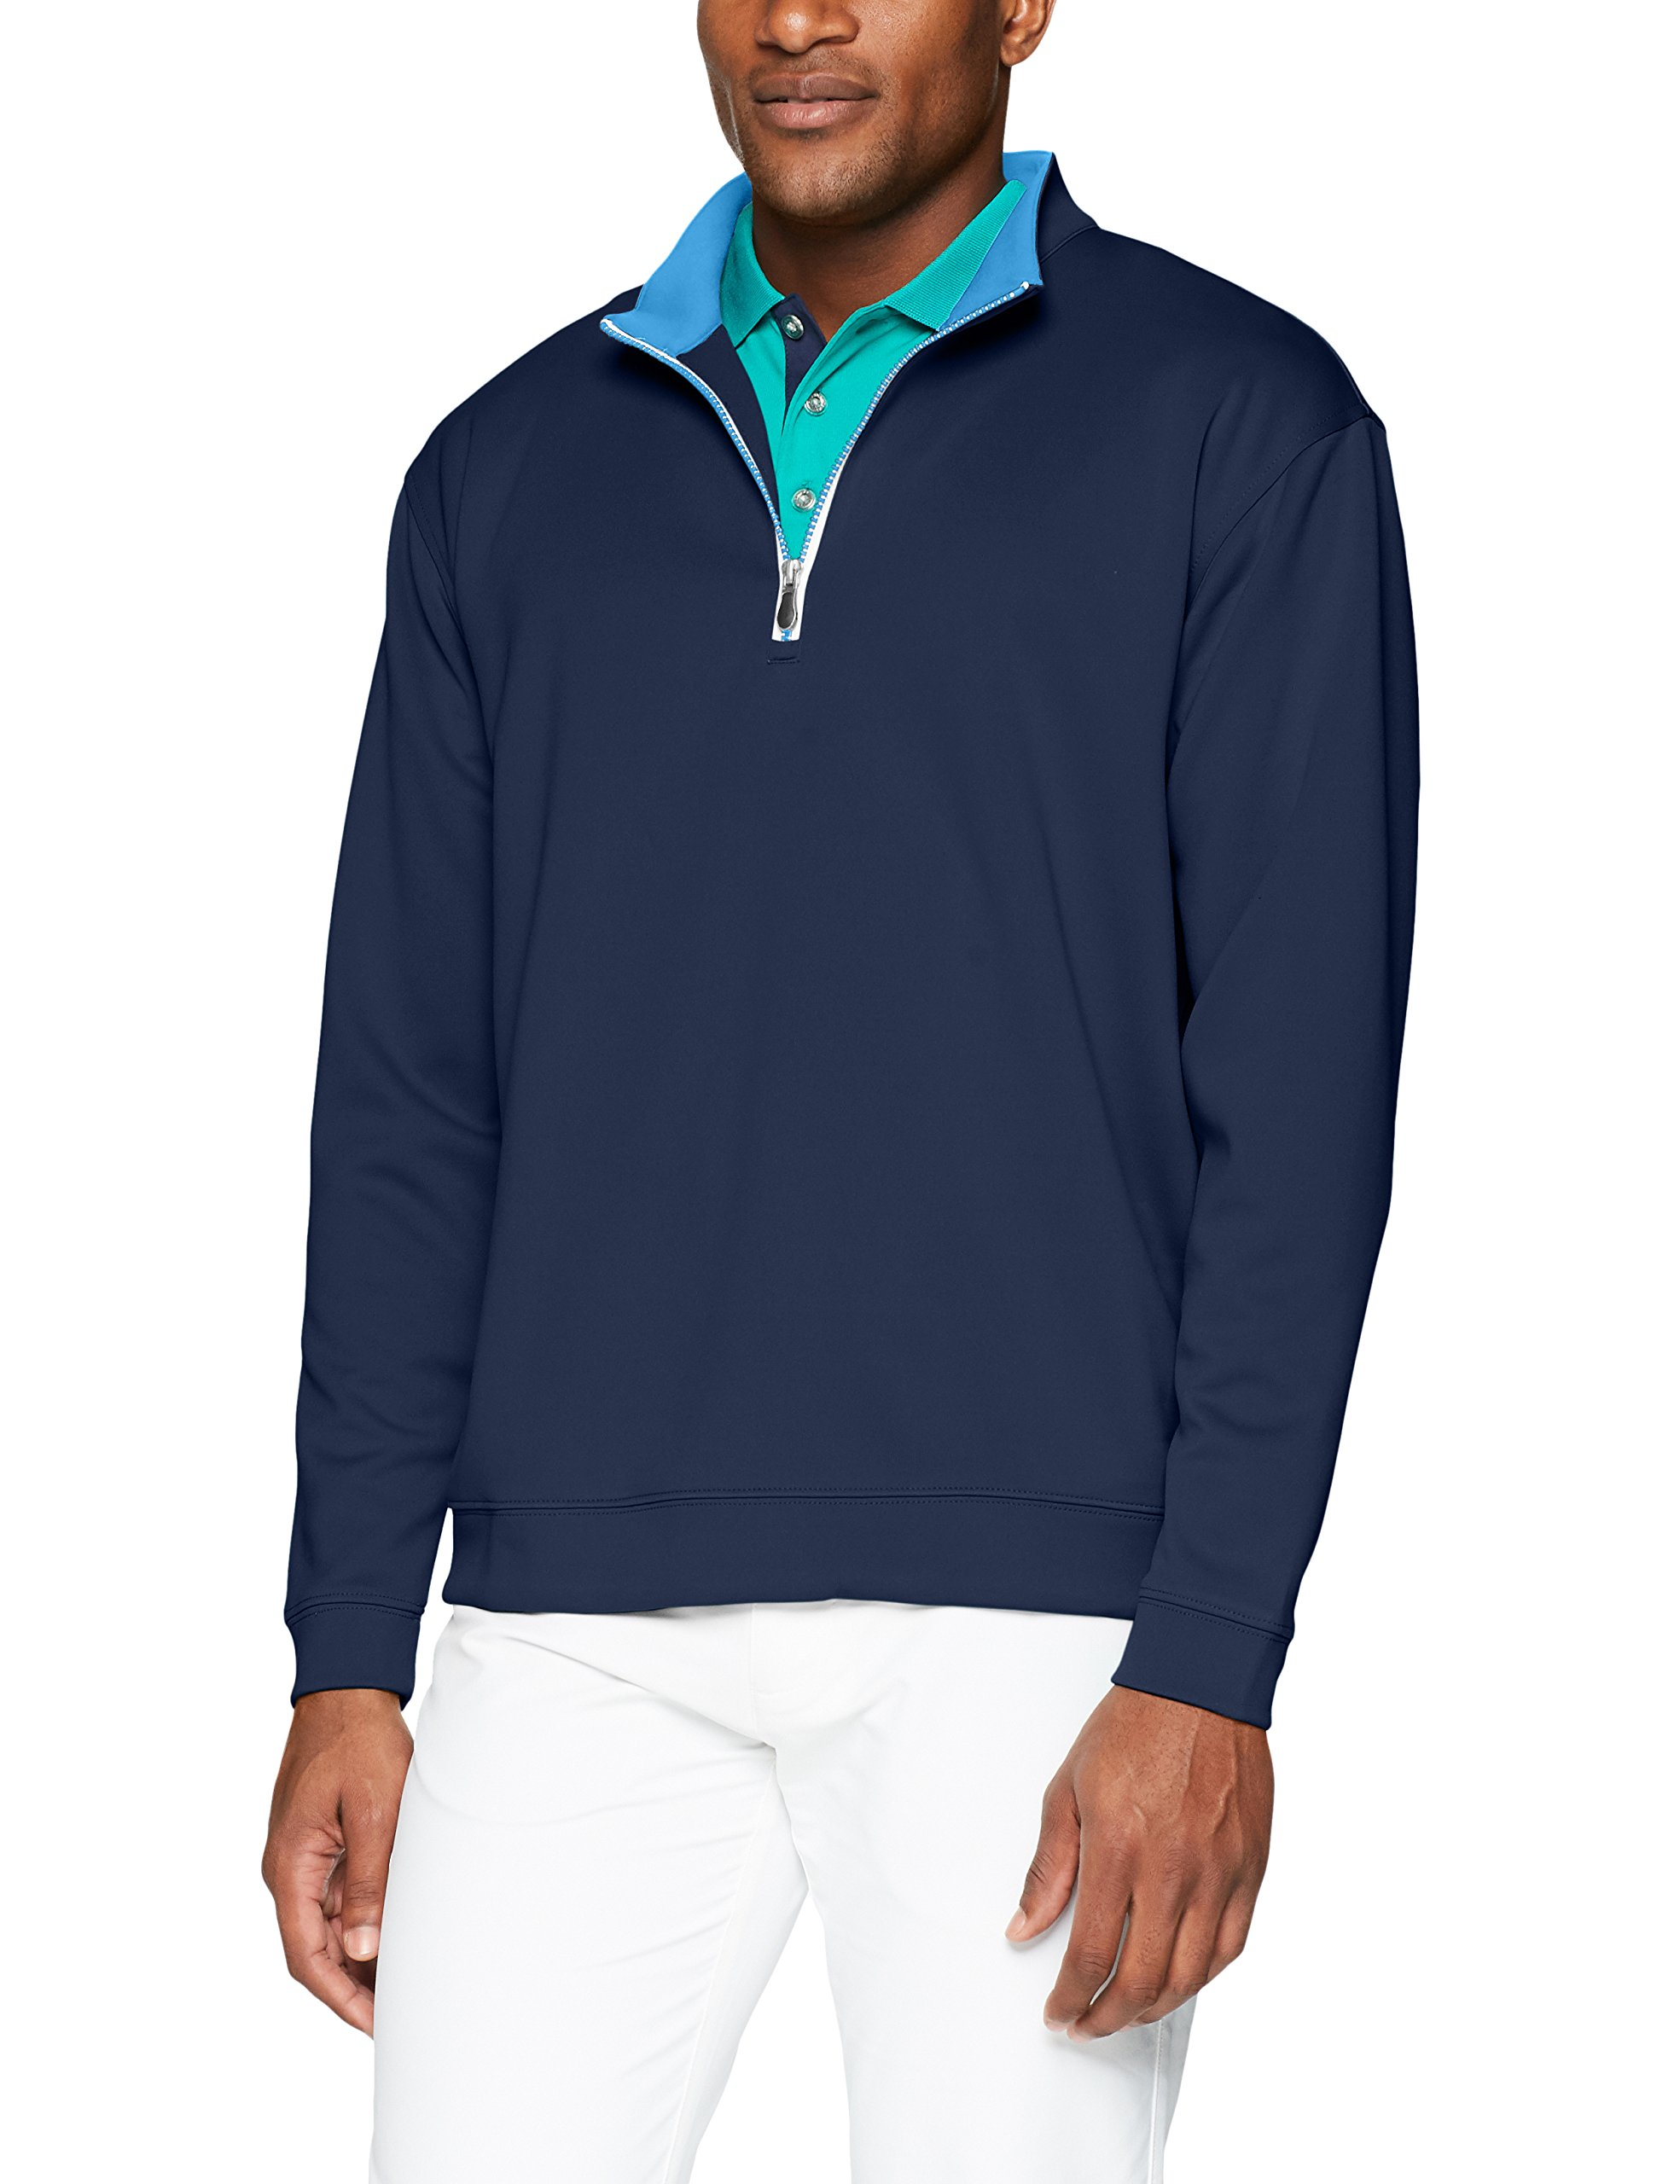 Men's Pebble Beach Golf Long Sleeve 1/4 Zip Pullover with Contrast Trim, Navy, X-Large